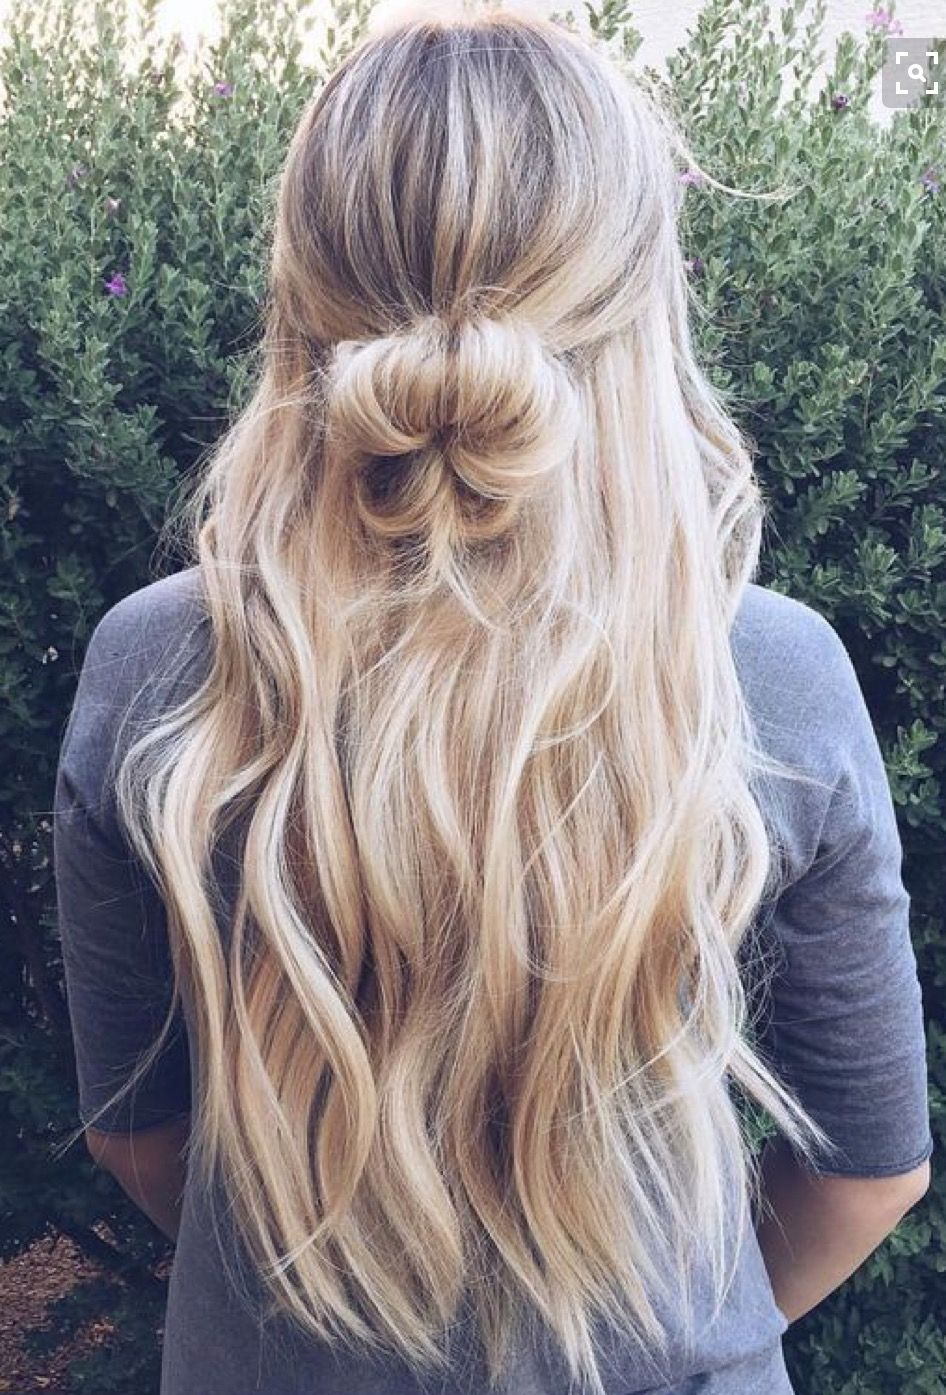 Pin by hannah collier on tangles and curls pinterest inspired